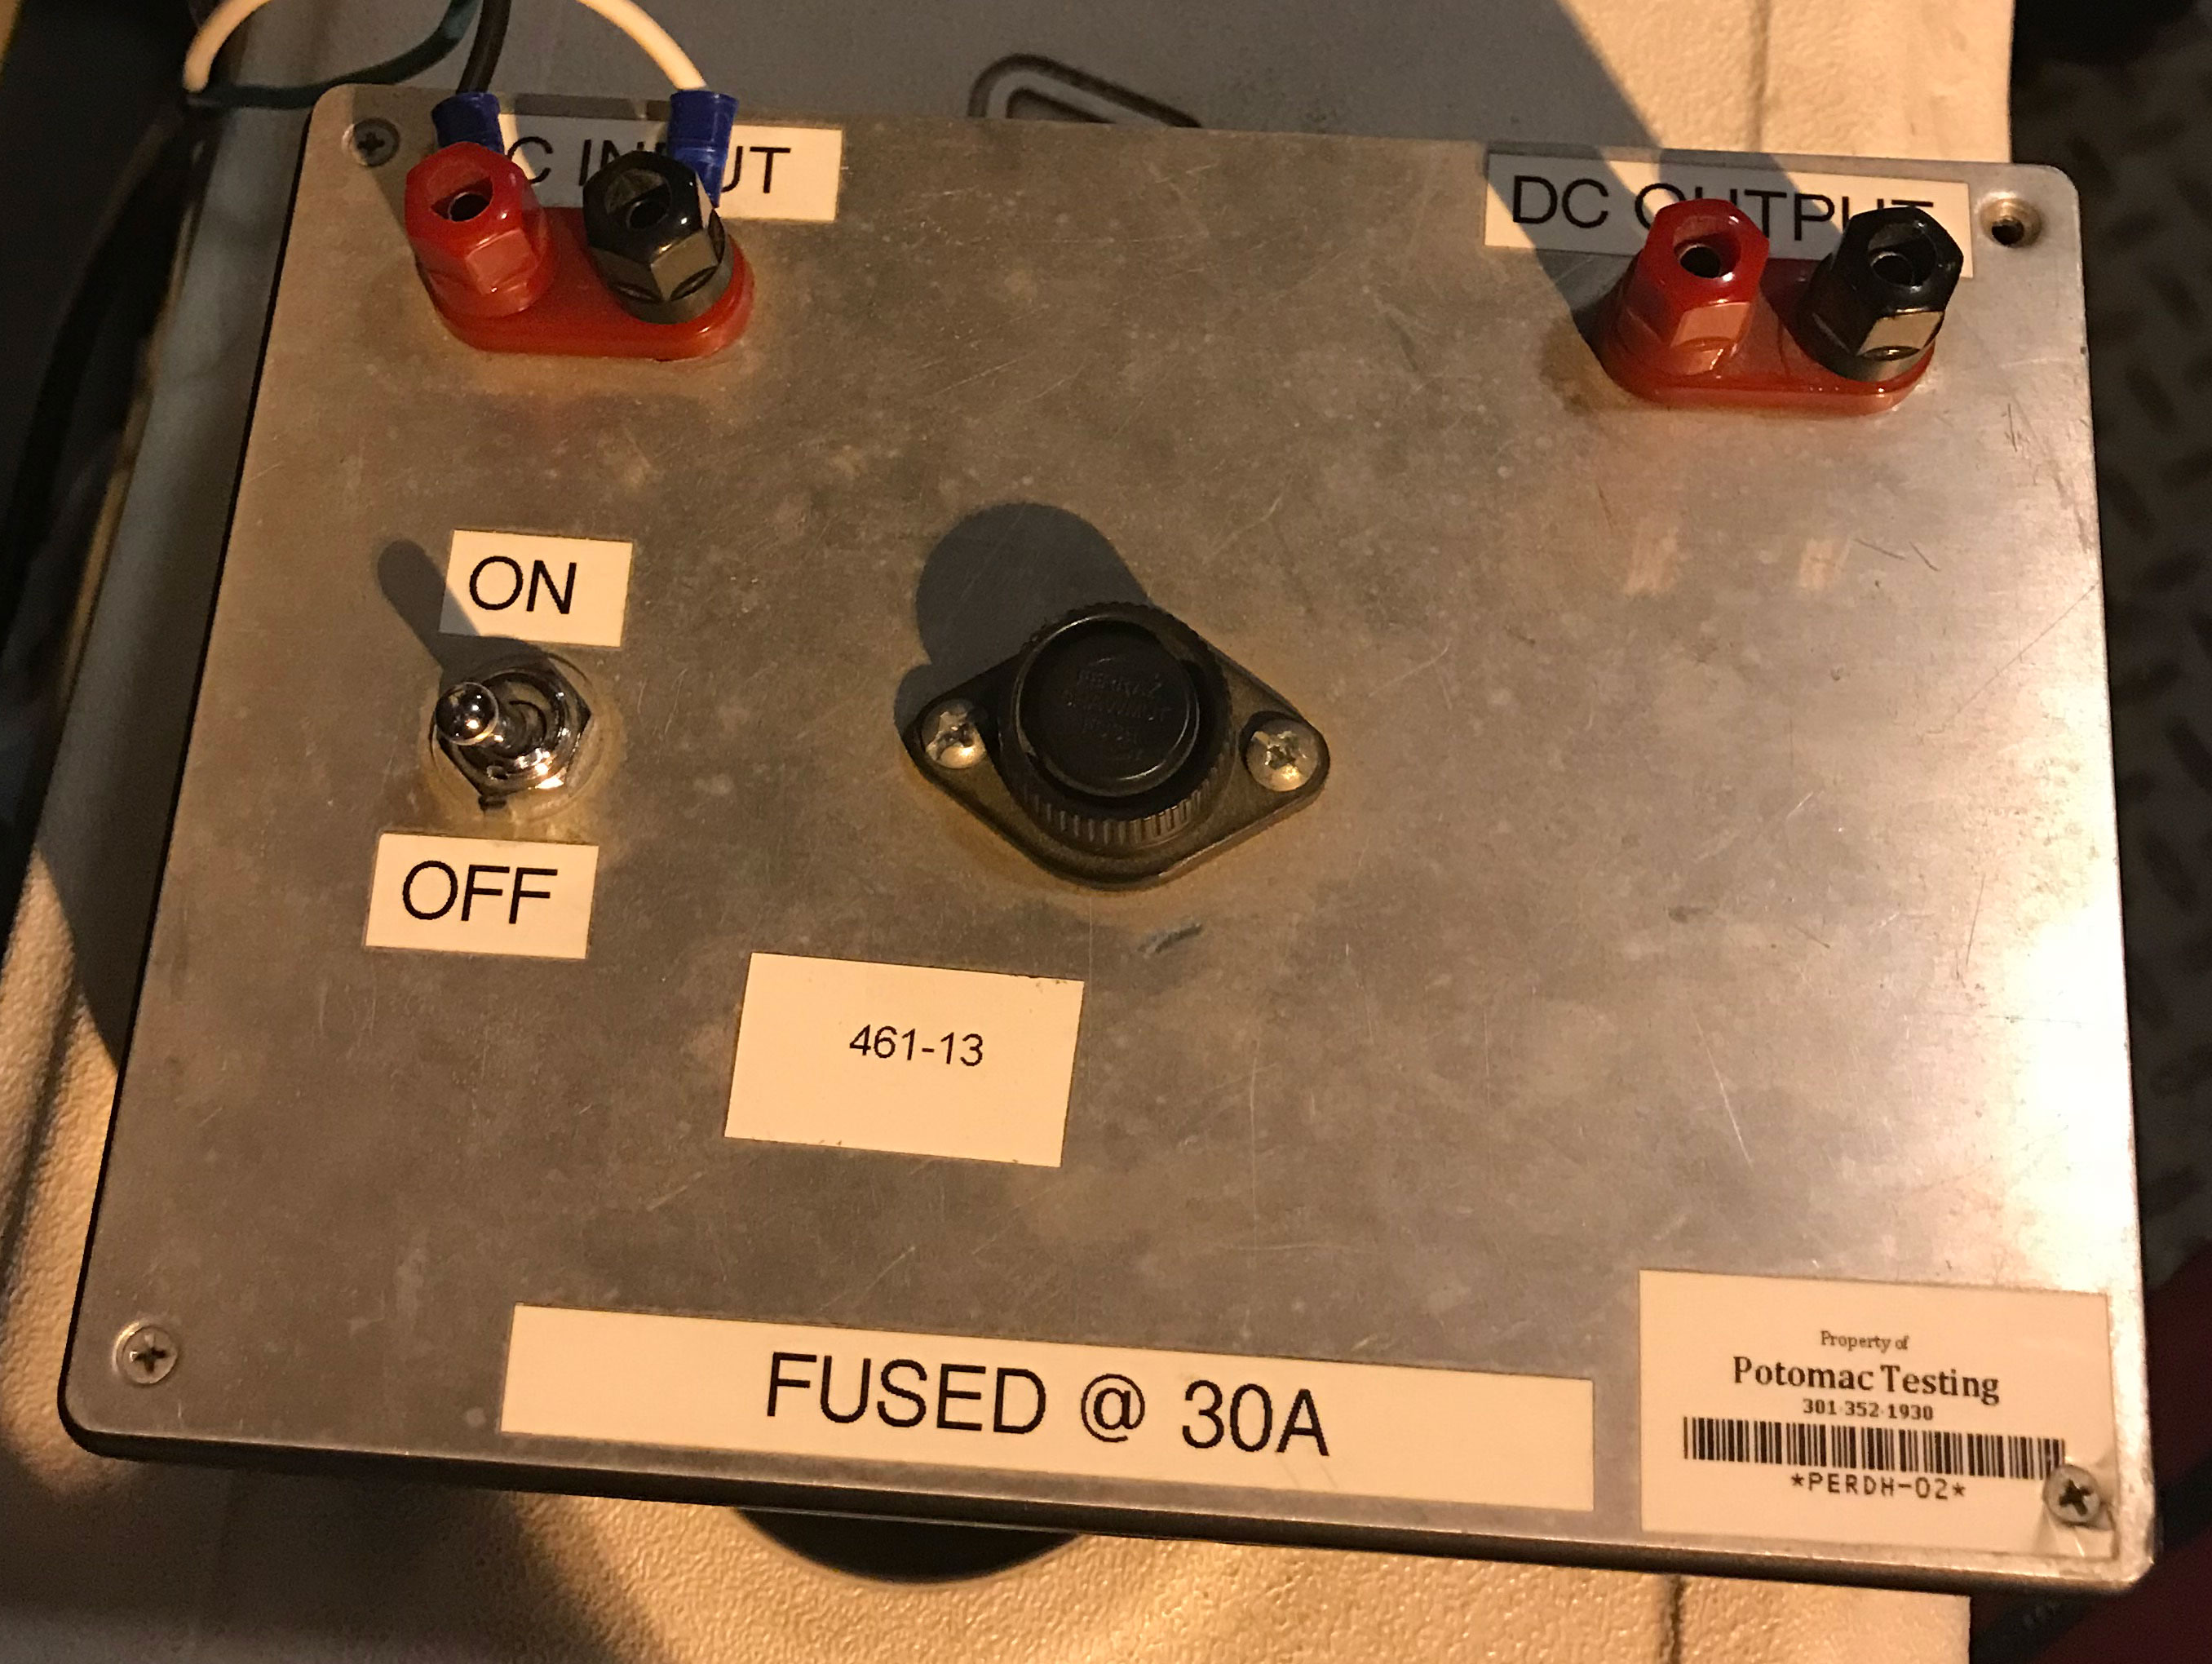 Custom Voltage Test Box Electrical Tech Fuse Switch A 30a In Series Between The And 120v Rectifier Input This Is Radioshack Plastic Project With Steel Decorative Finish Plate